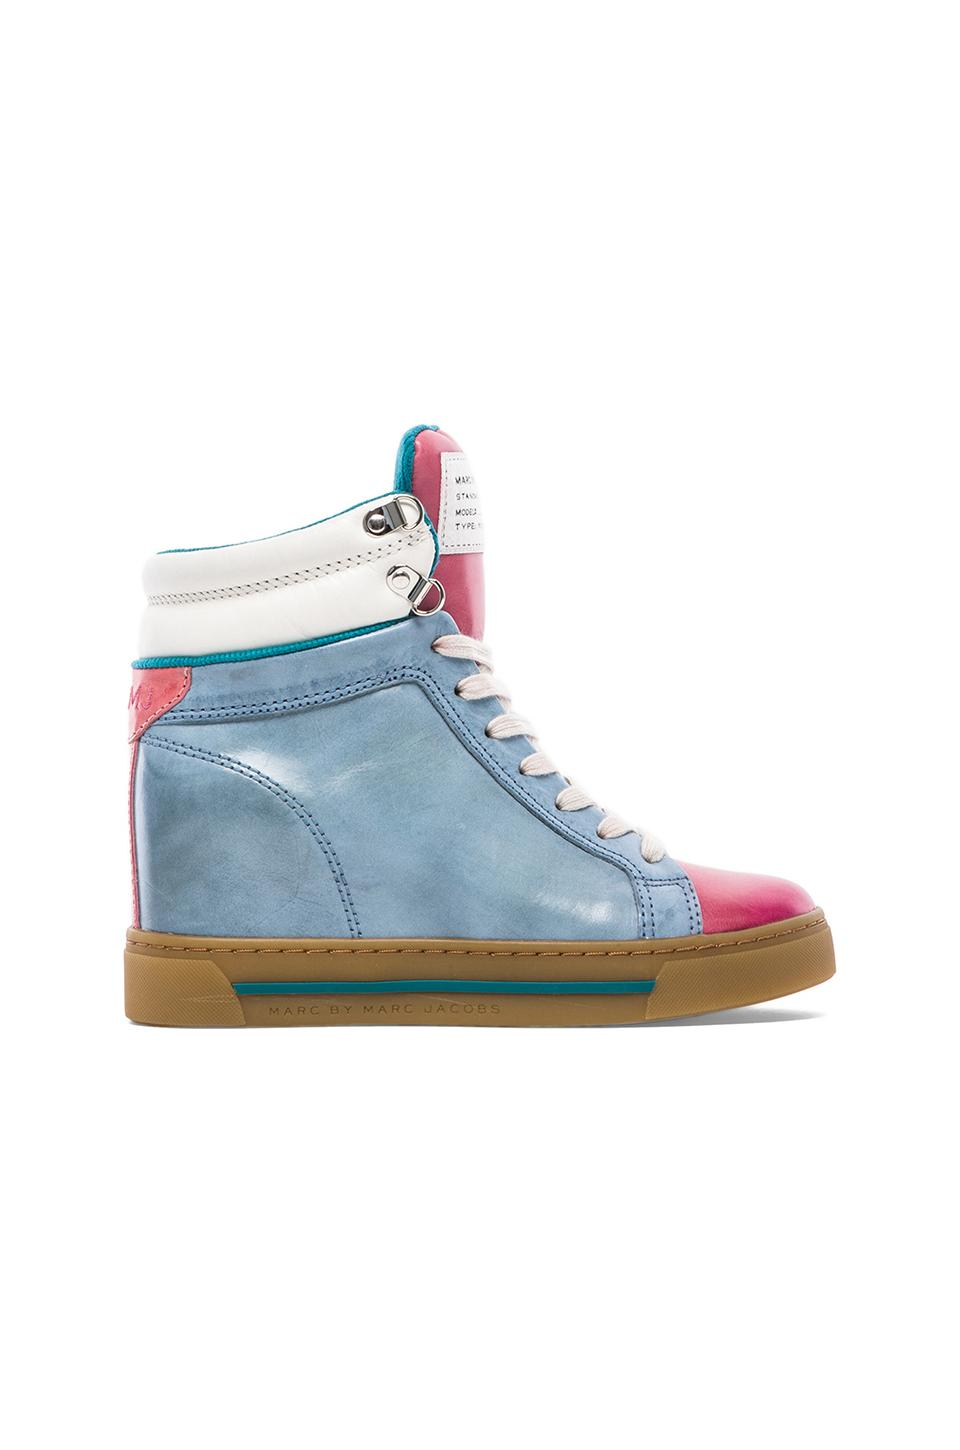 Marc by Marc Jacobs Cute Kicks Sneaker Wedge in Raspberry & Blue & White & Coral